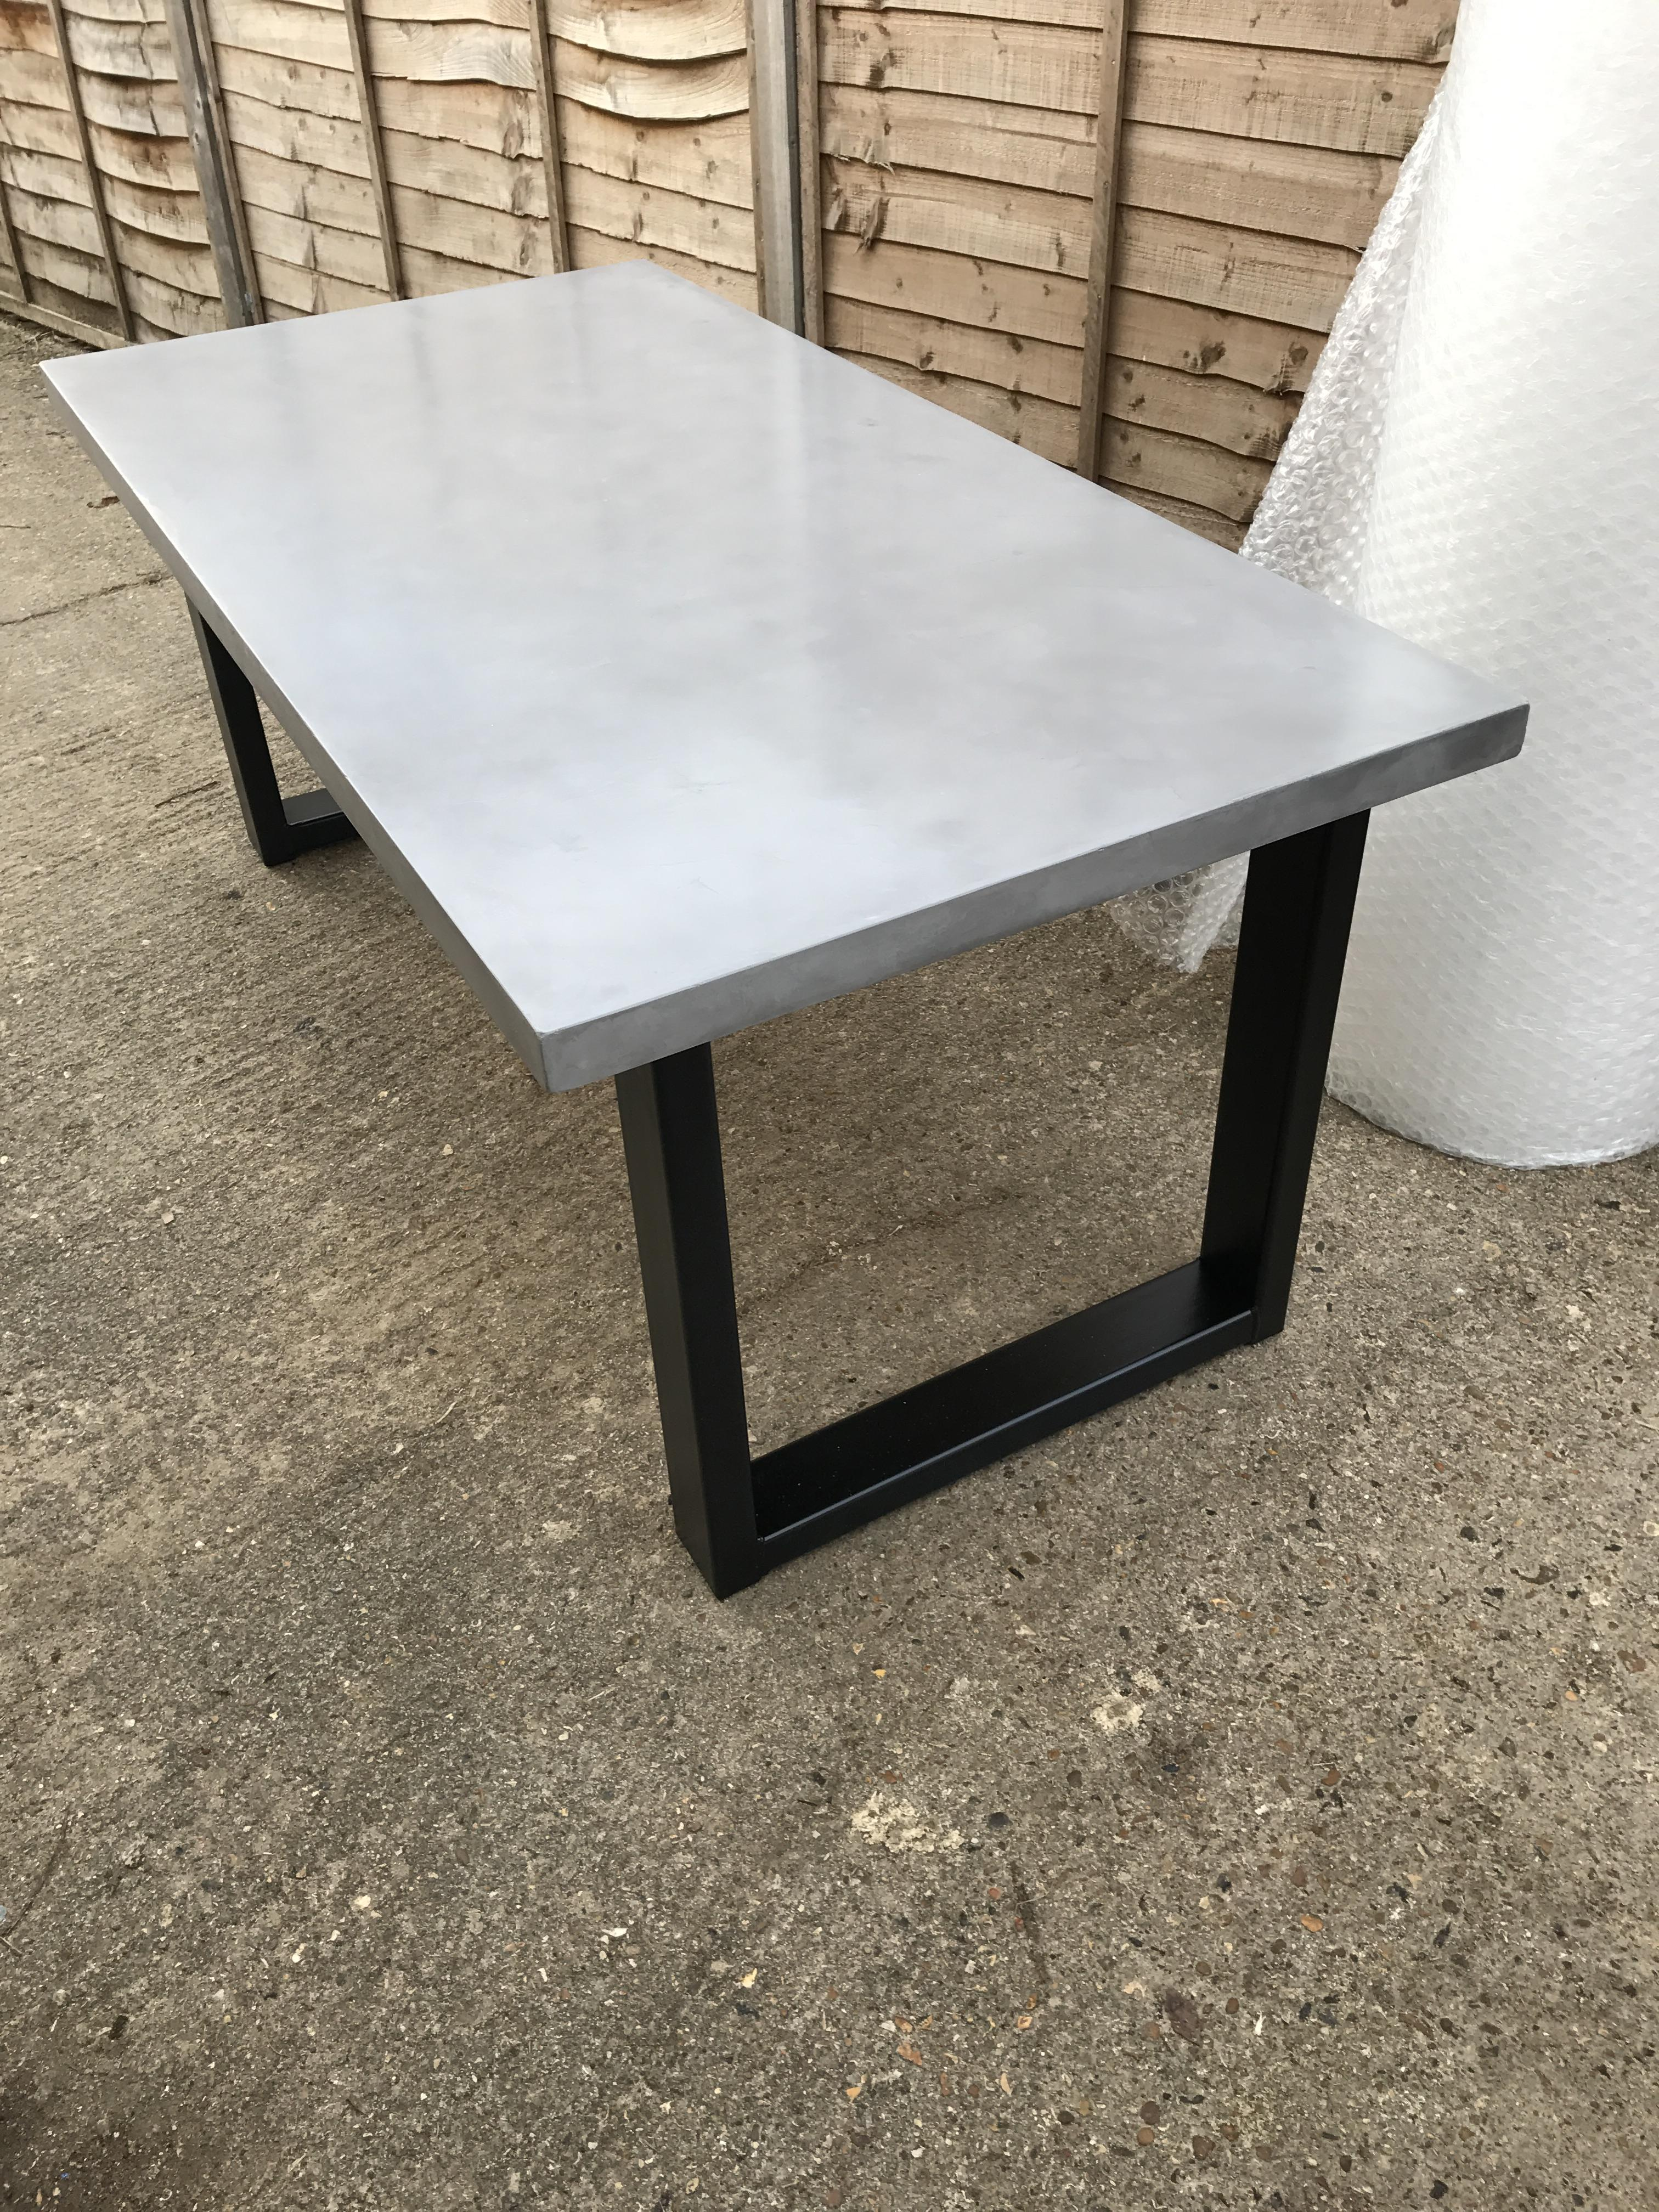 Chunky polished concrete dining table